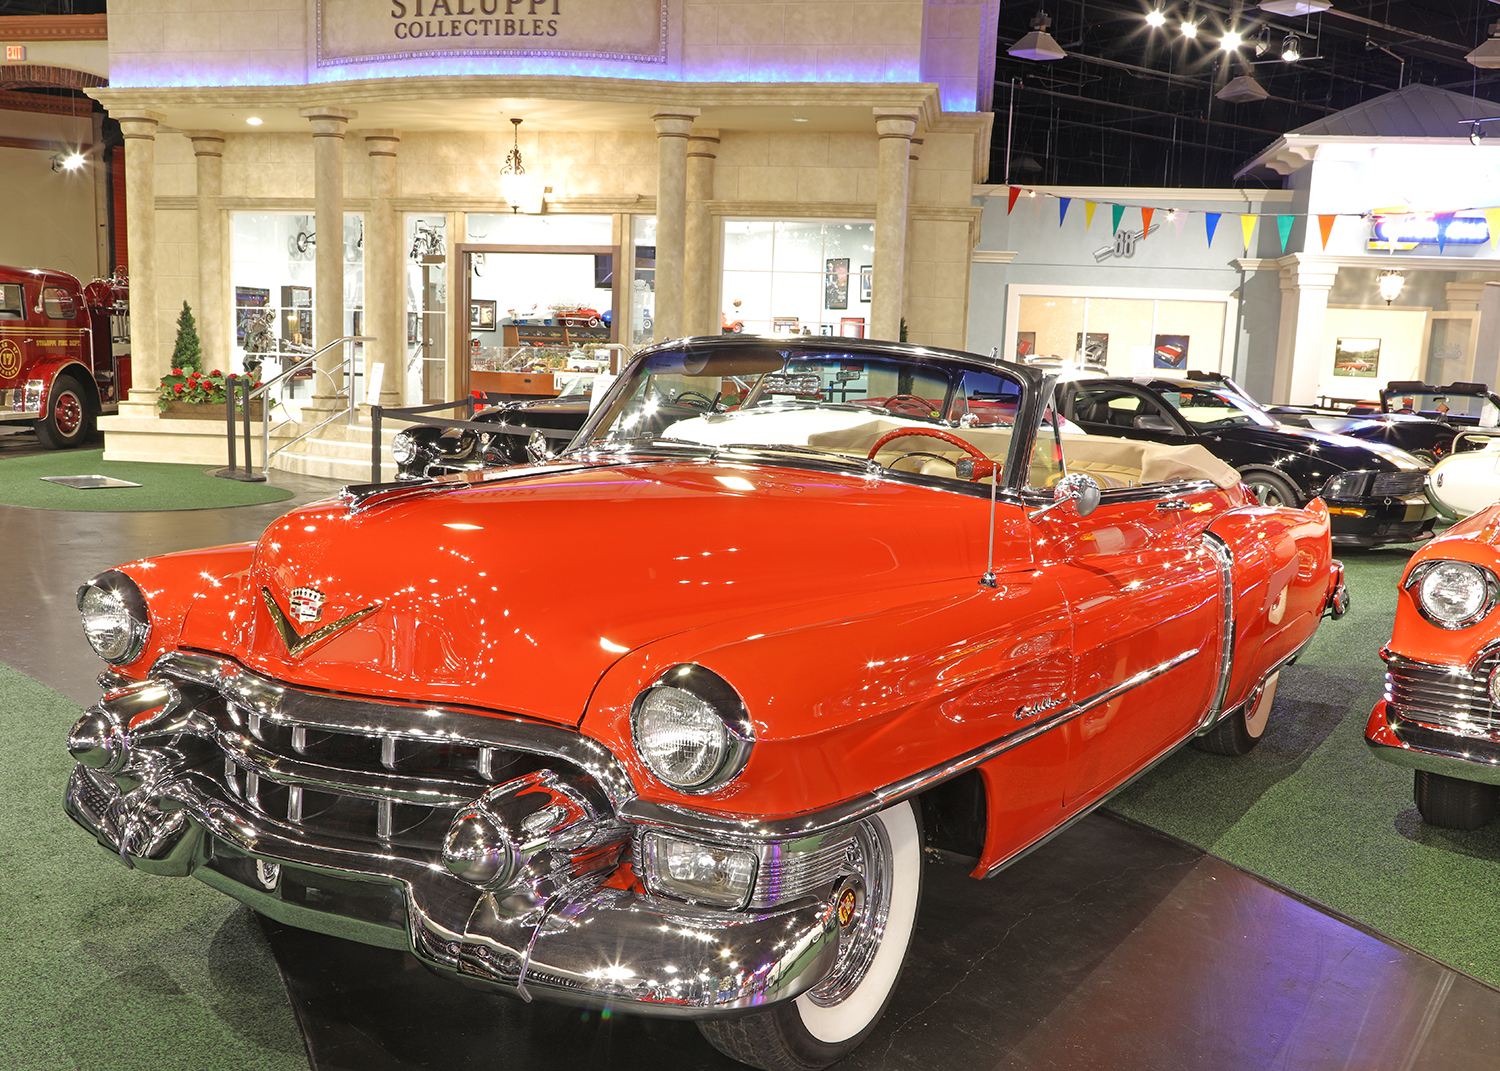 Car Collection Welcome To Cars Of Dreams Museum 1953 Pontiac Star Chief Cadillac Series 62 Convertible